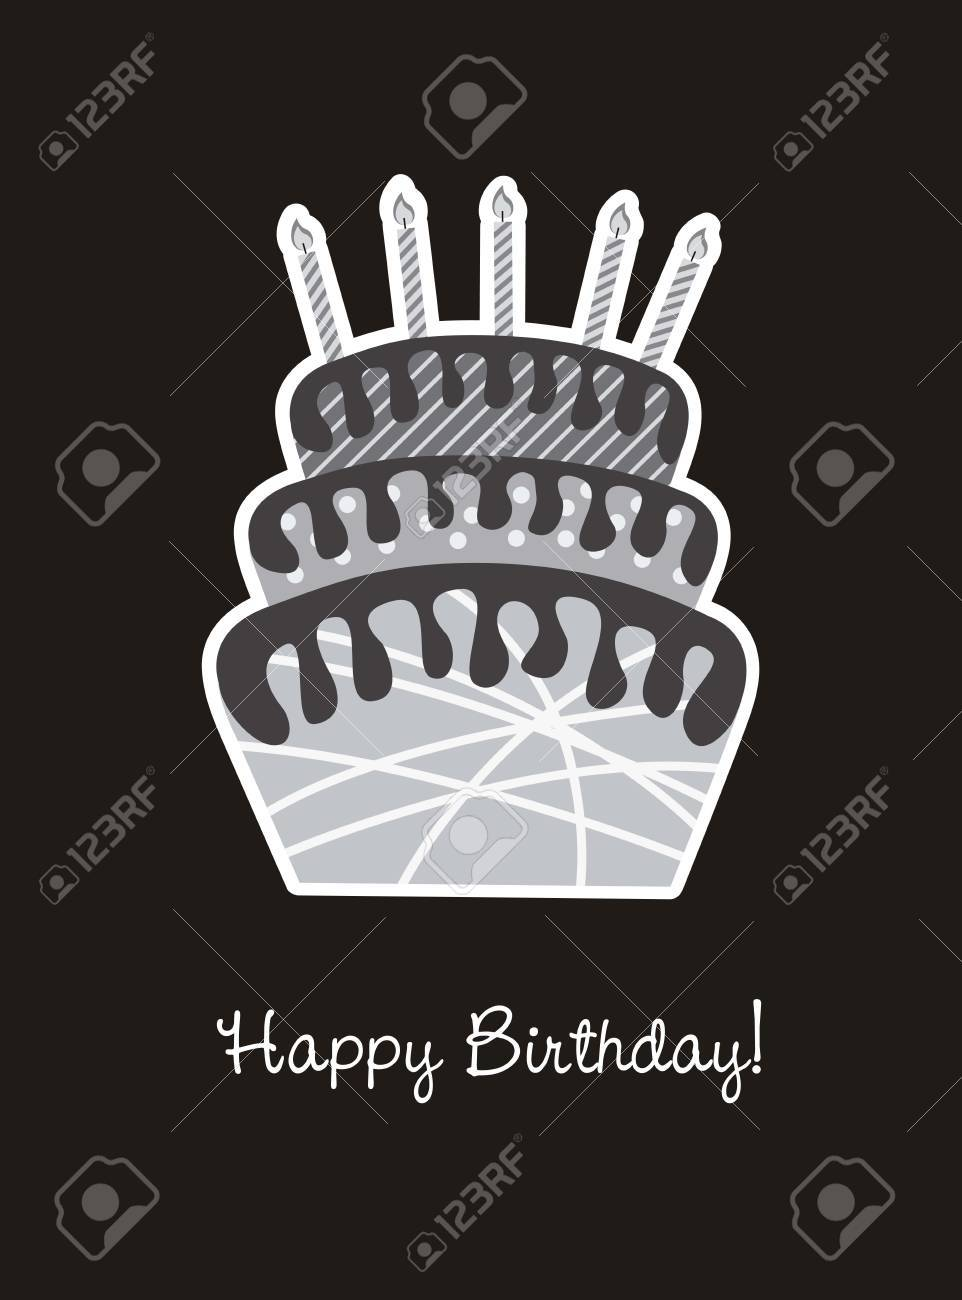 birhday card with cake, black and white. vector illustration Stock Vector - 14944629